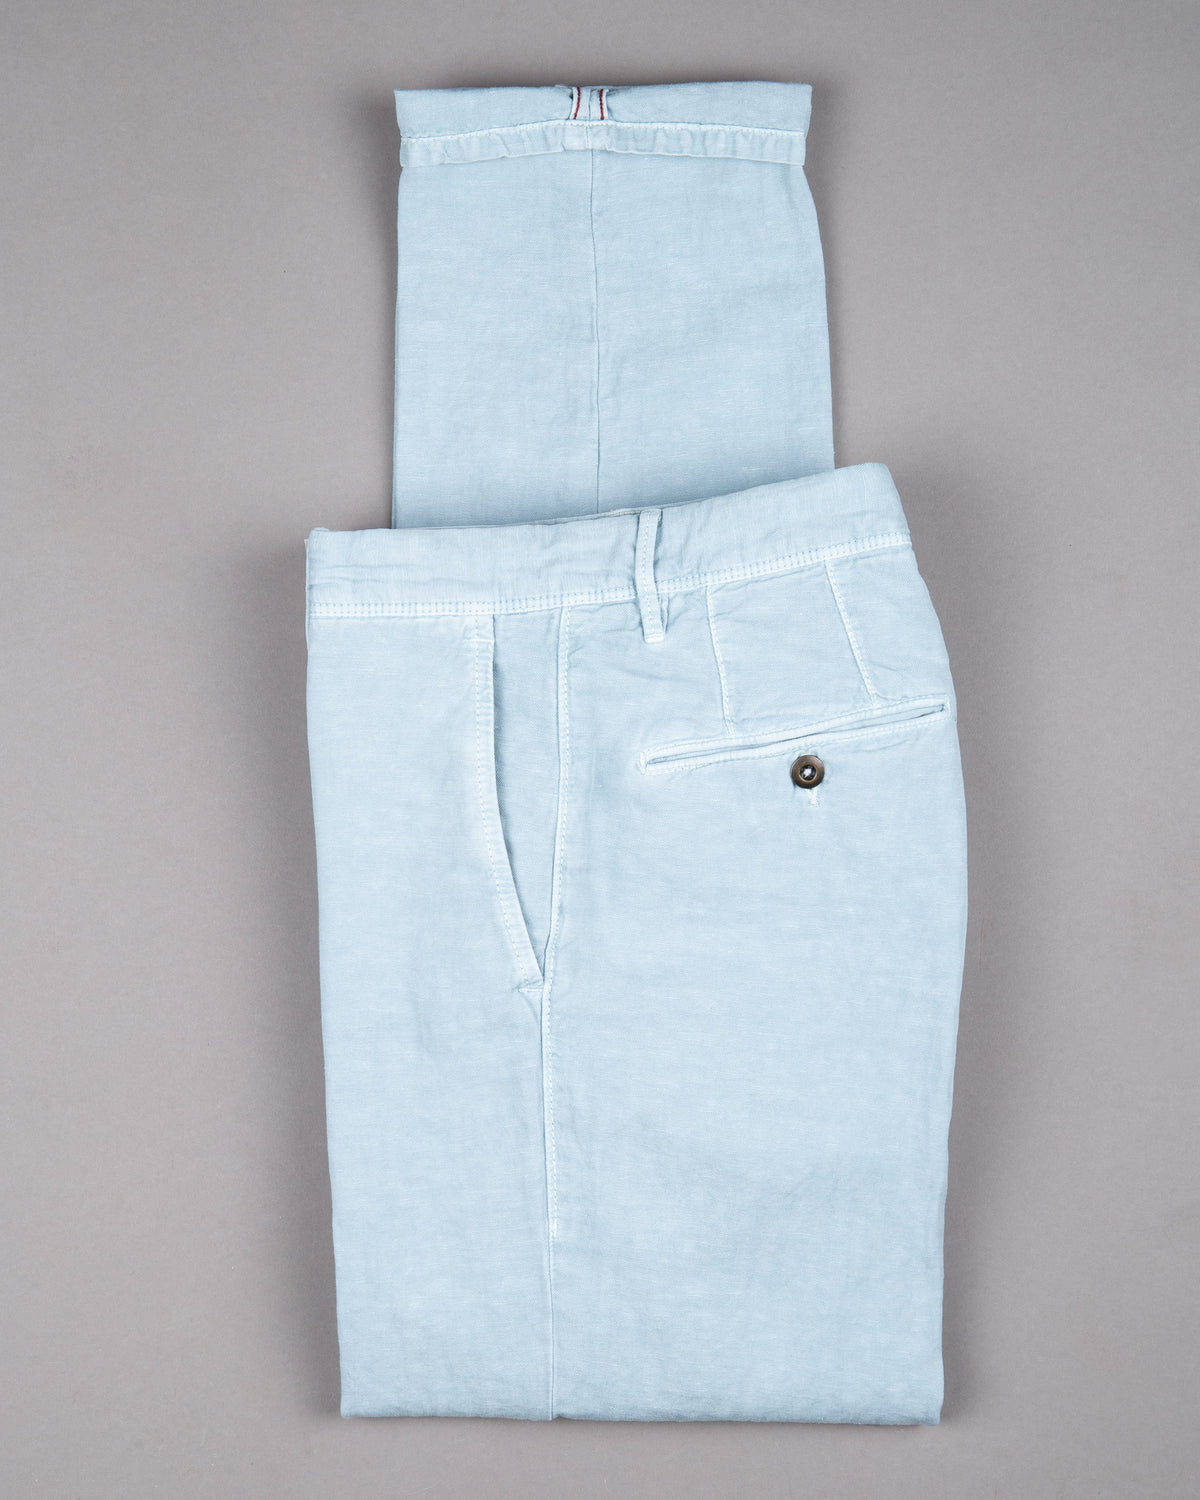 Incotex slacks Chino Trouser Pants Hose for men in light blue 51% linen 49% cotton